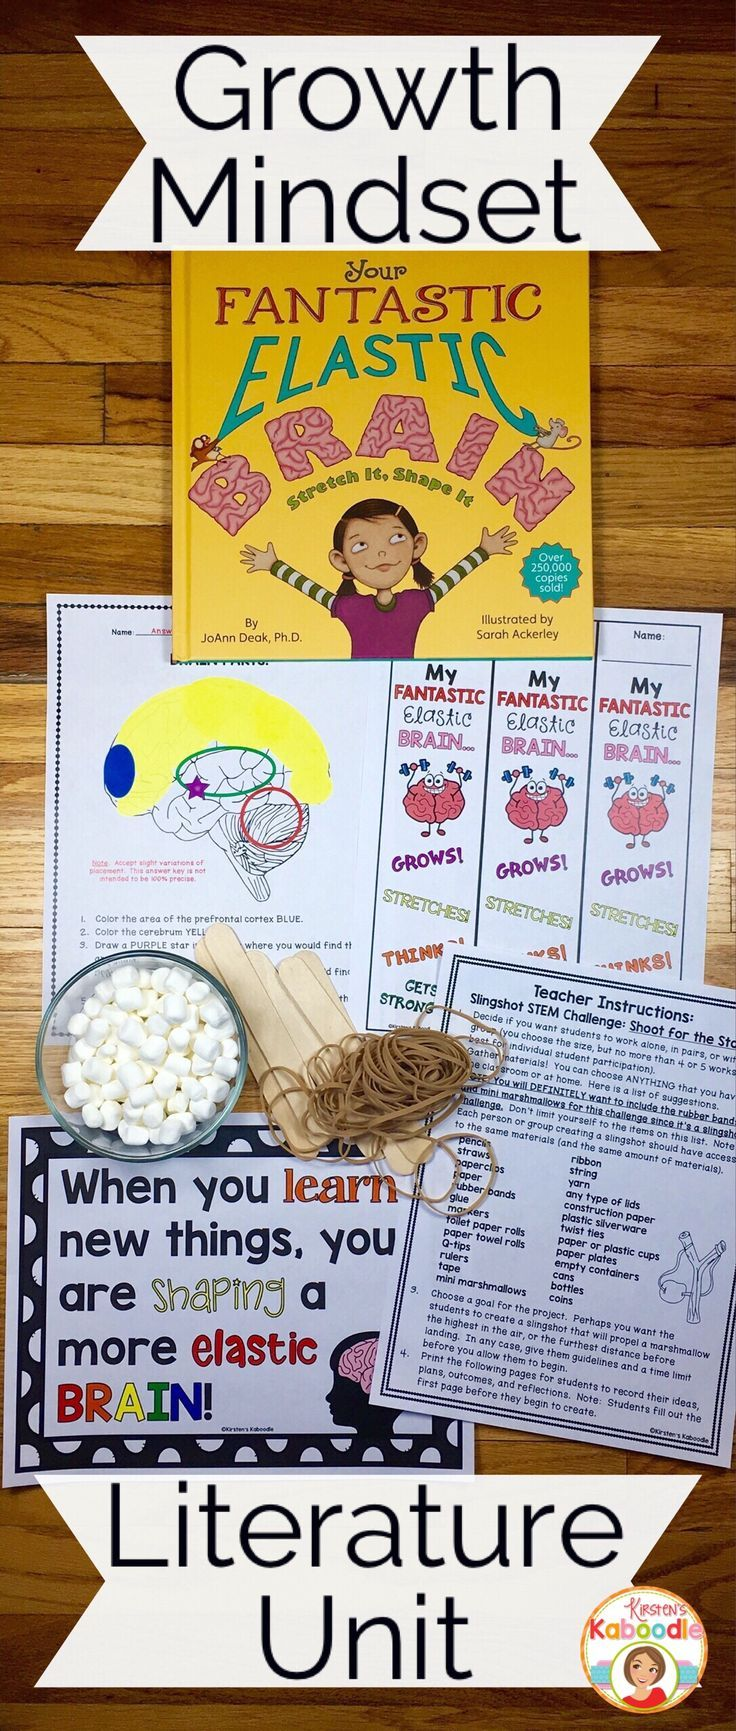 Are you teaching your students about growth mindset? Your Fantastic Elastic…